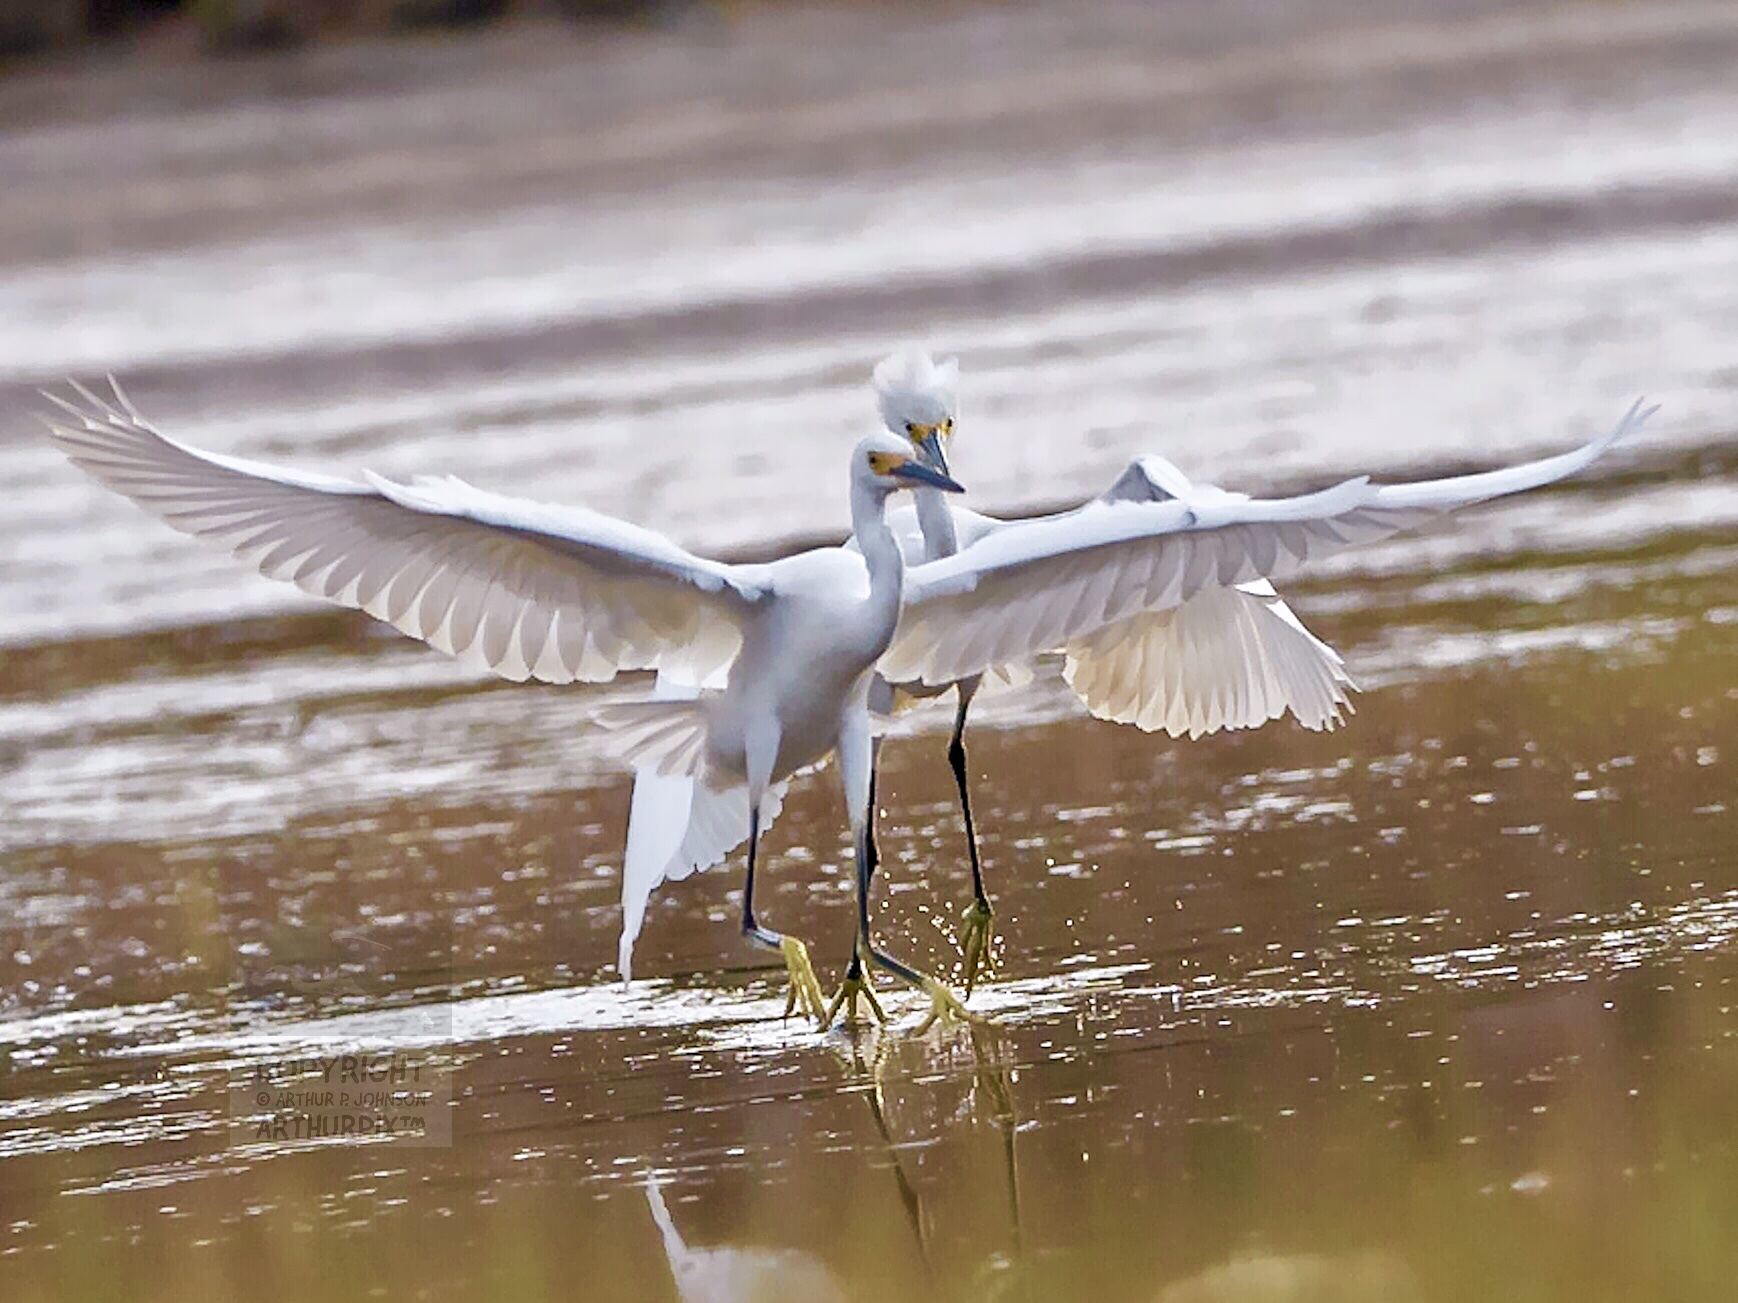 A pair of Juvenile Great Egrets scampers through a salt marsh pool.